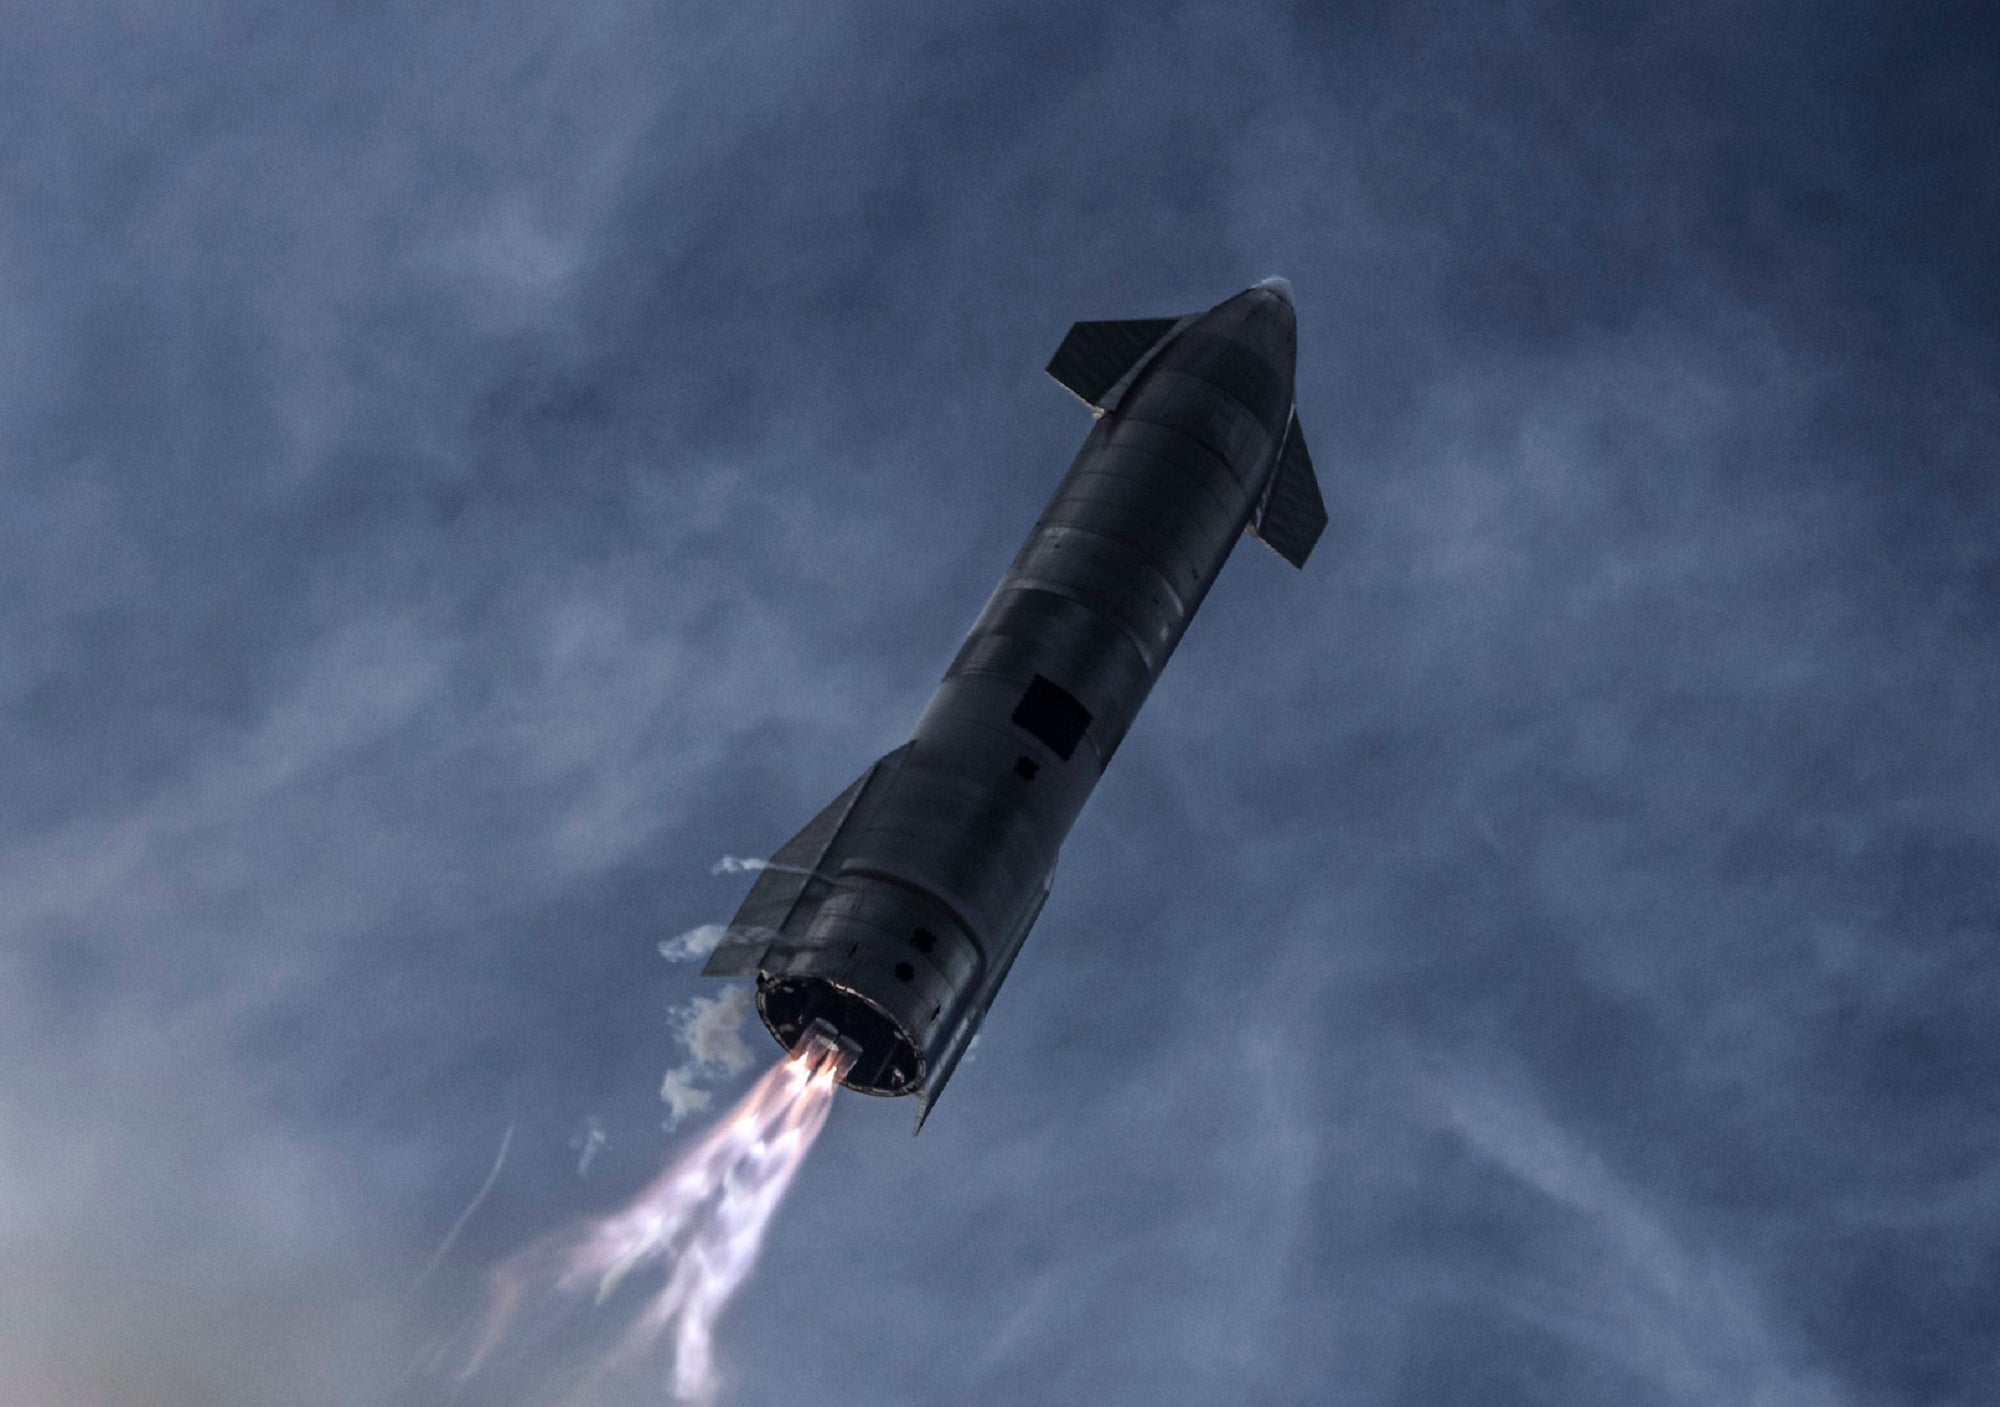 The Air Force wants $48 million to practice dropping stuff from rockets